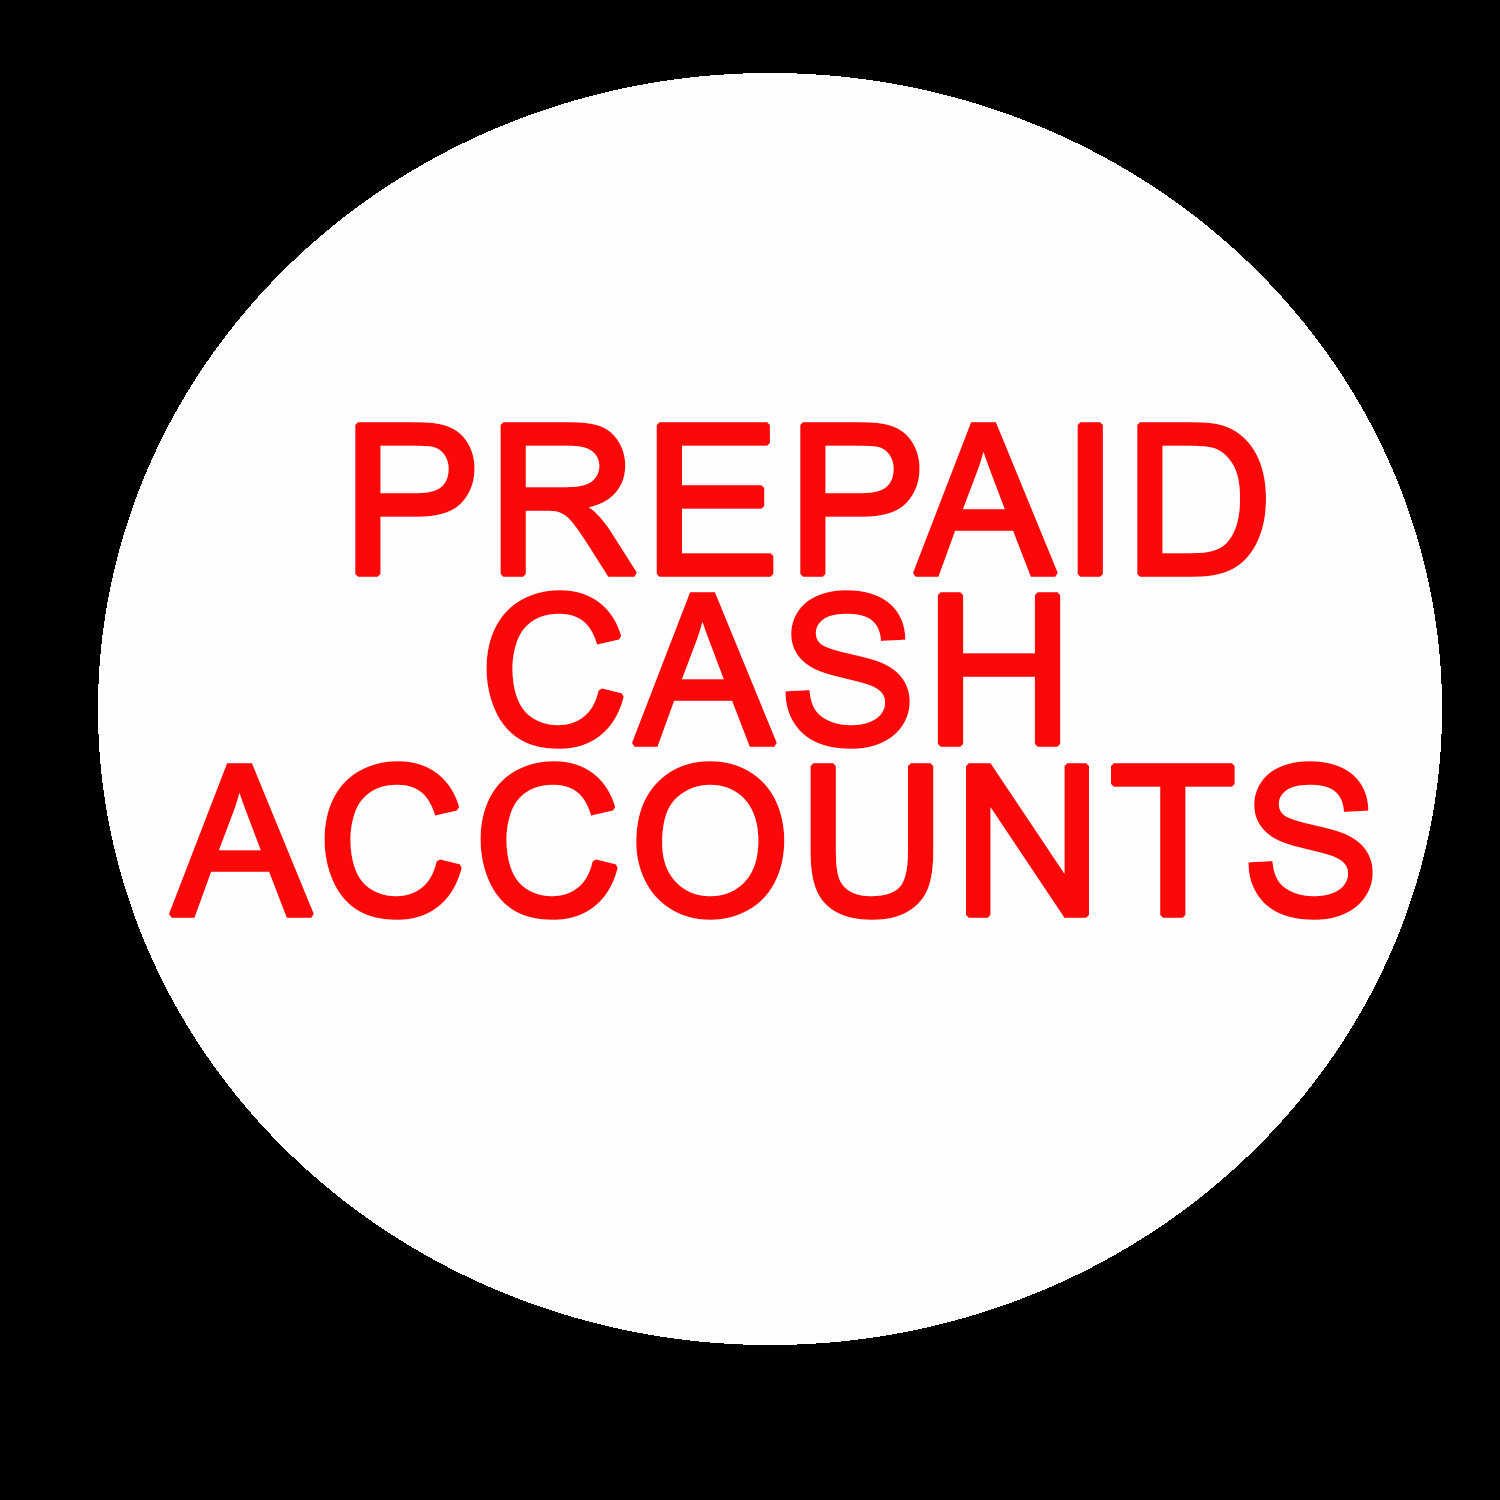 Website_Save logo cash accounts